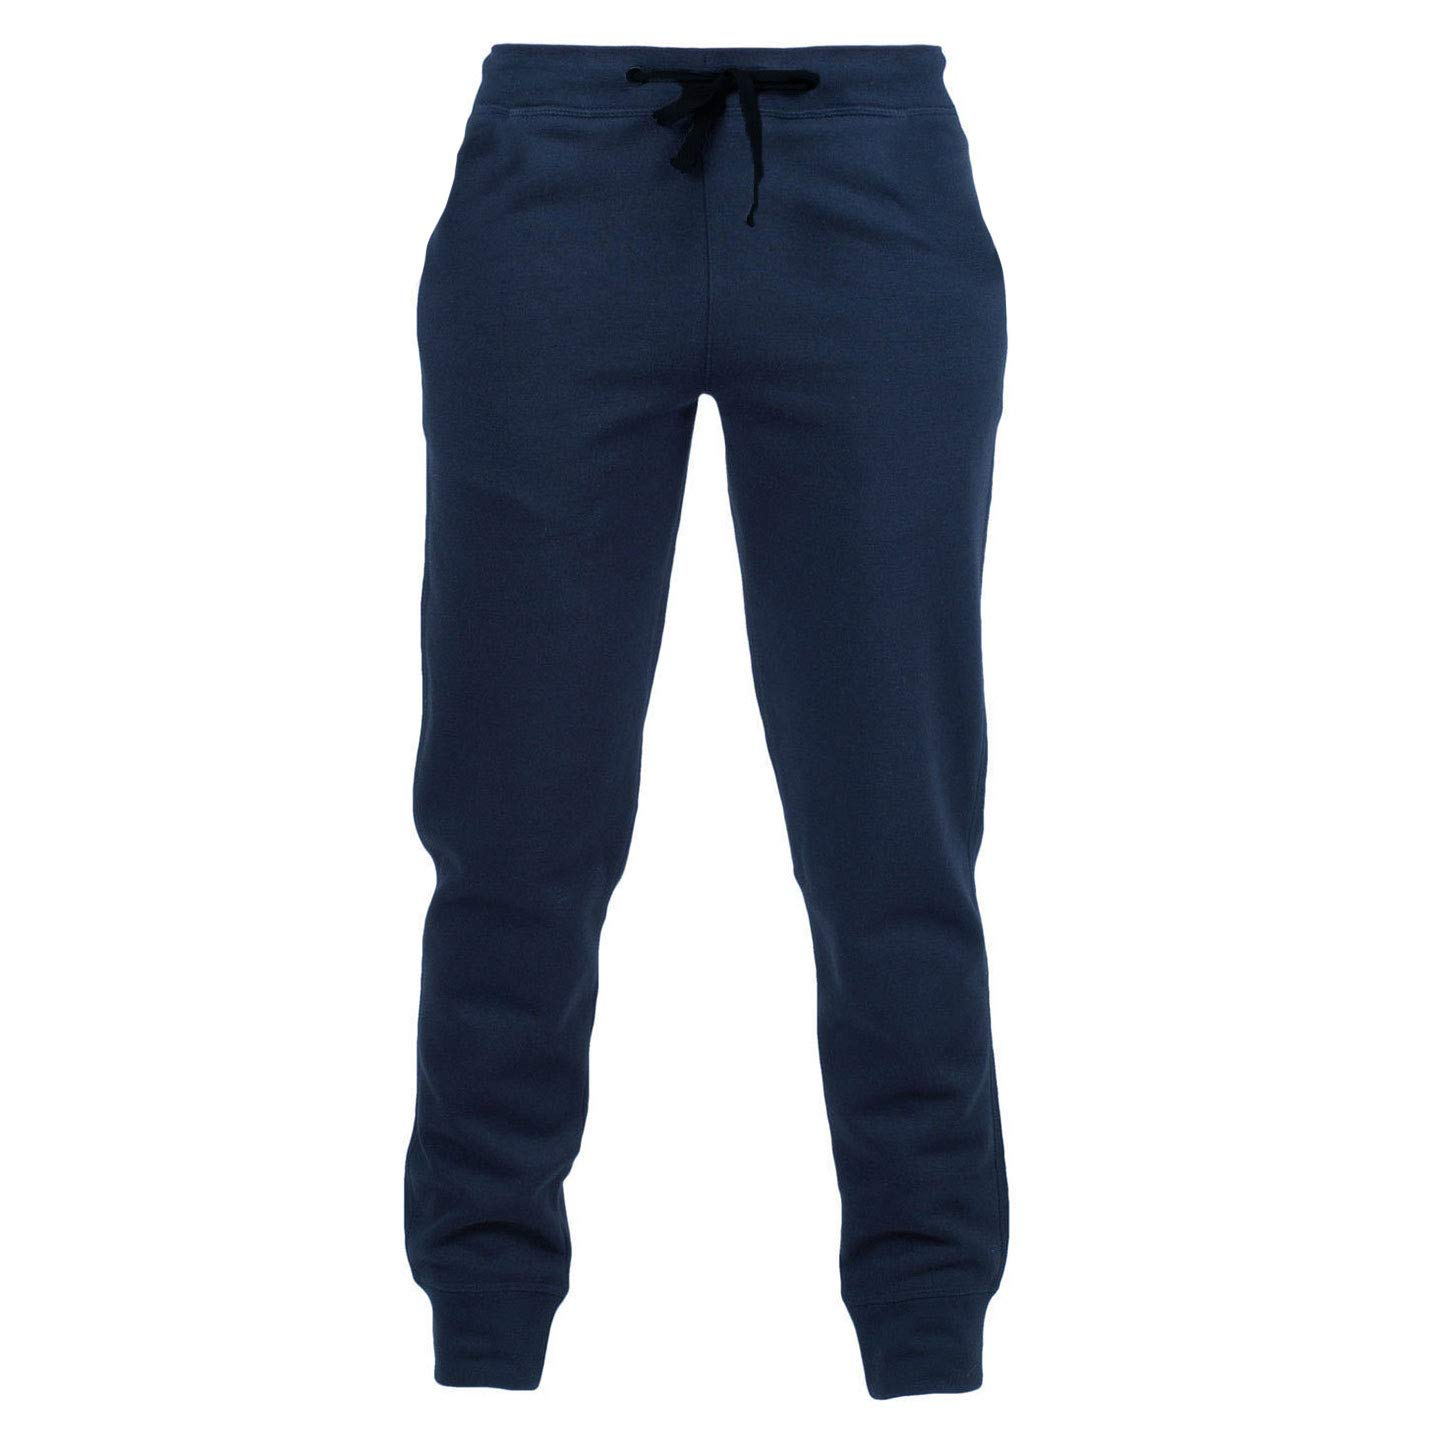 GenerationGap Kids Boys Zip Pockets Slim Fit Trouser Bottoms